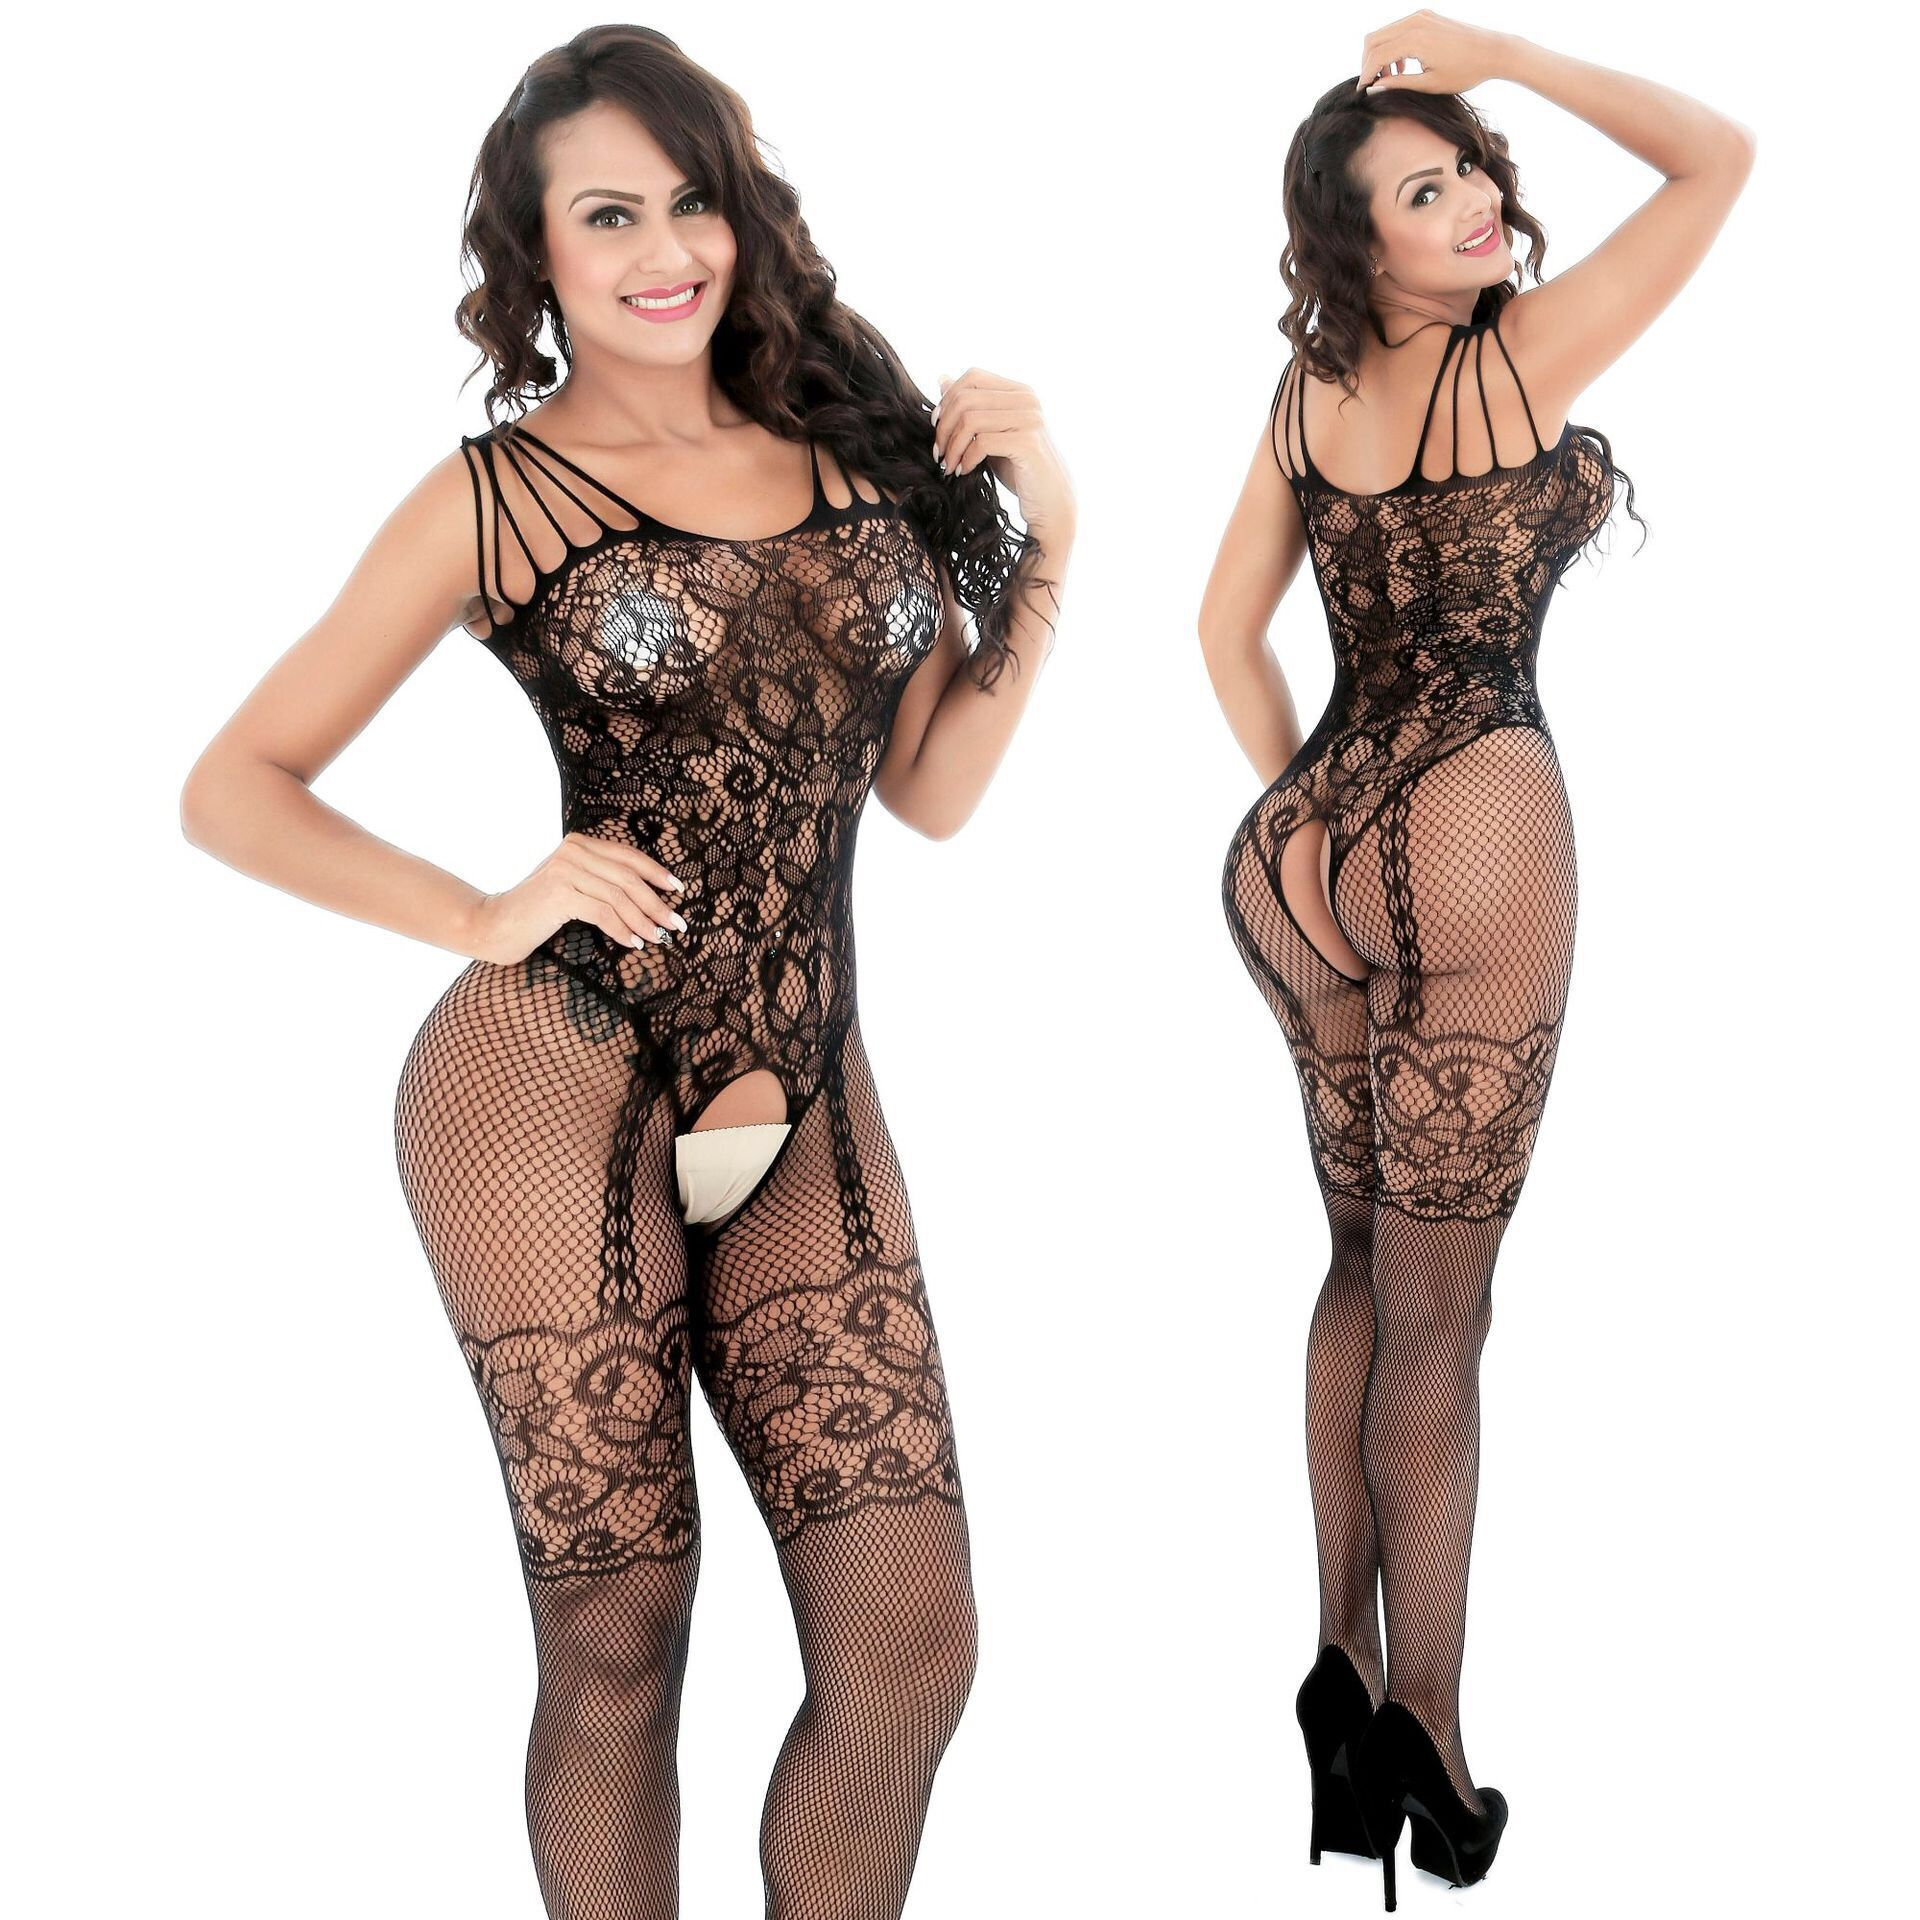 HKMN 7 Colors Erotic Underwear For Women Sex Stocking Sexy Bodysuits Baby Doll Nightclub Dancer Mesh Lingerie Plus Size Costumes